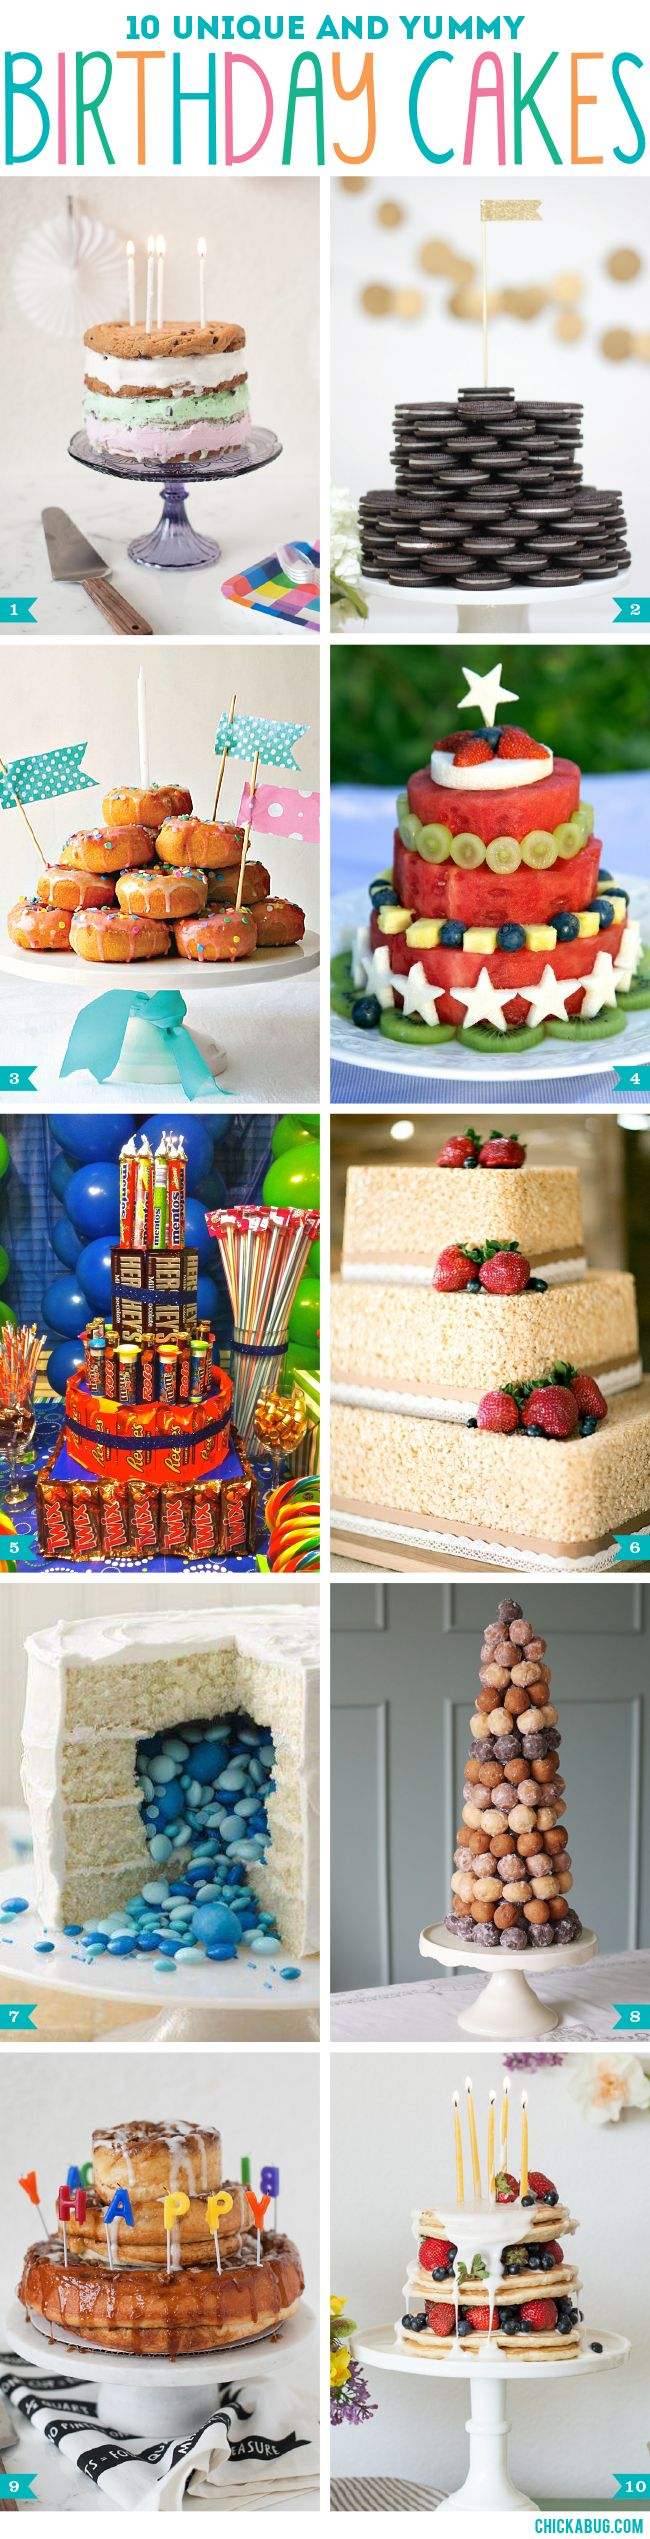 10 unique and yummy birthday cakes - only one is actually made from cake!